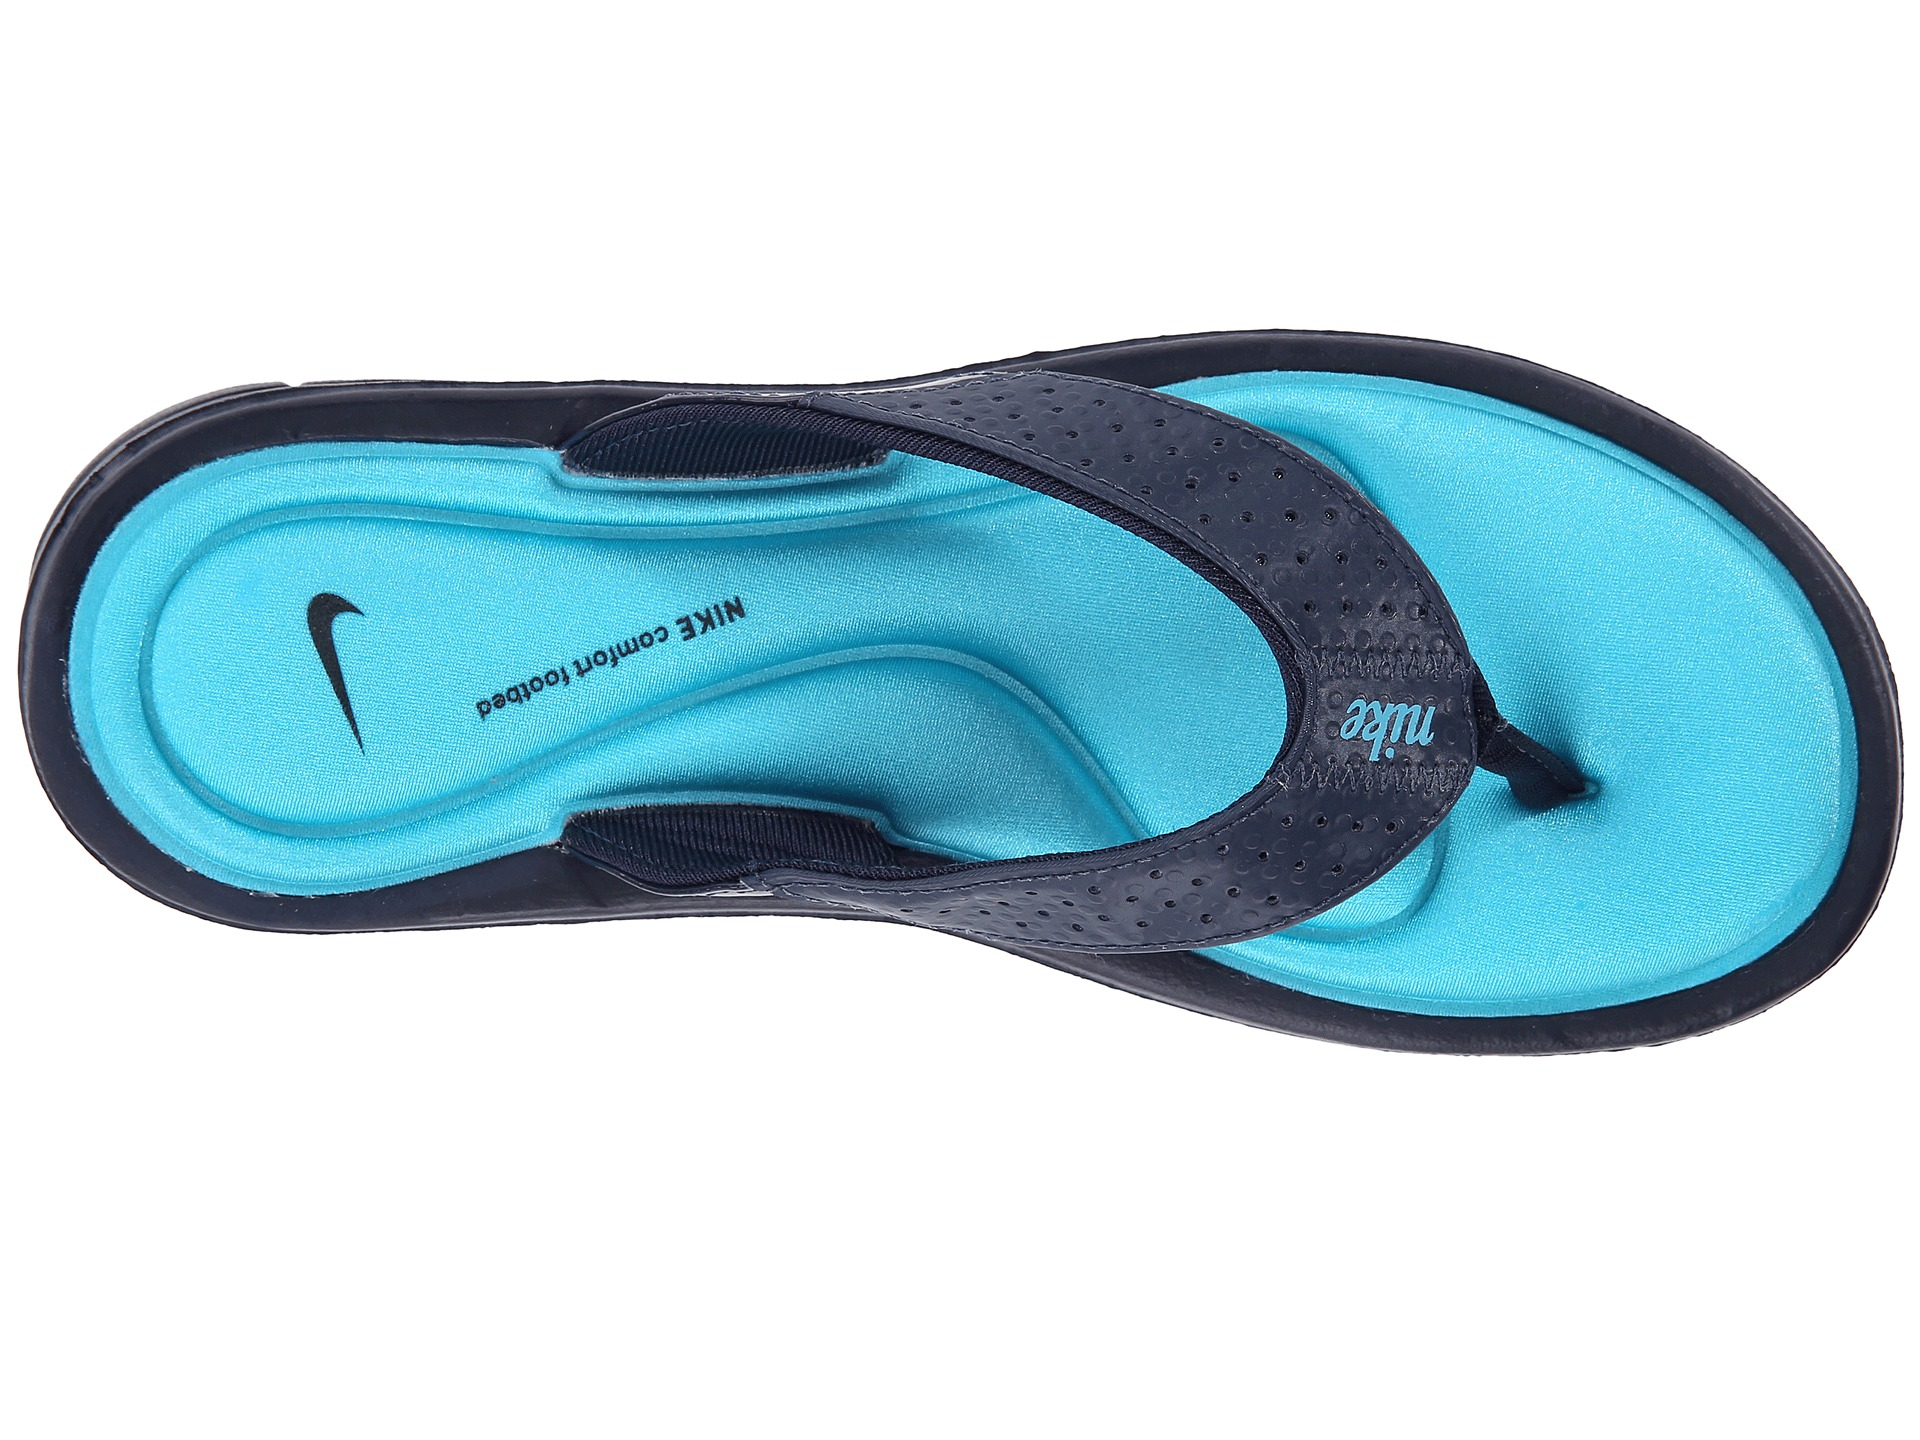 women nike x comfort thong photo flop womens flip for sandals comforter delightful of sandal